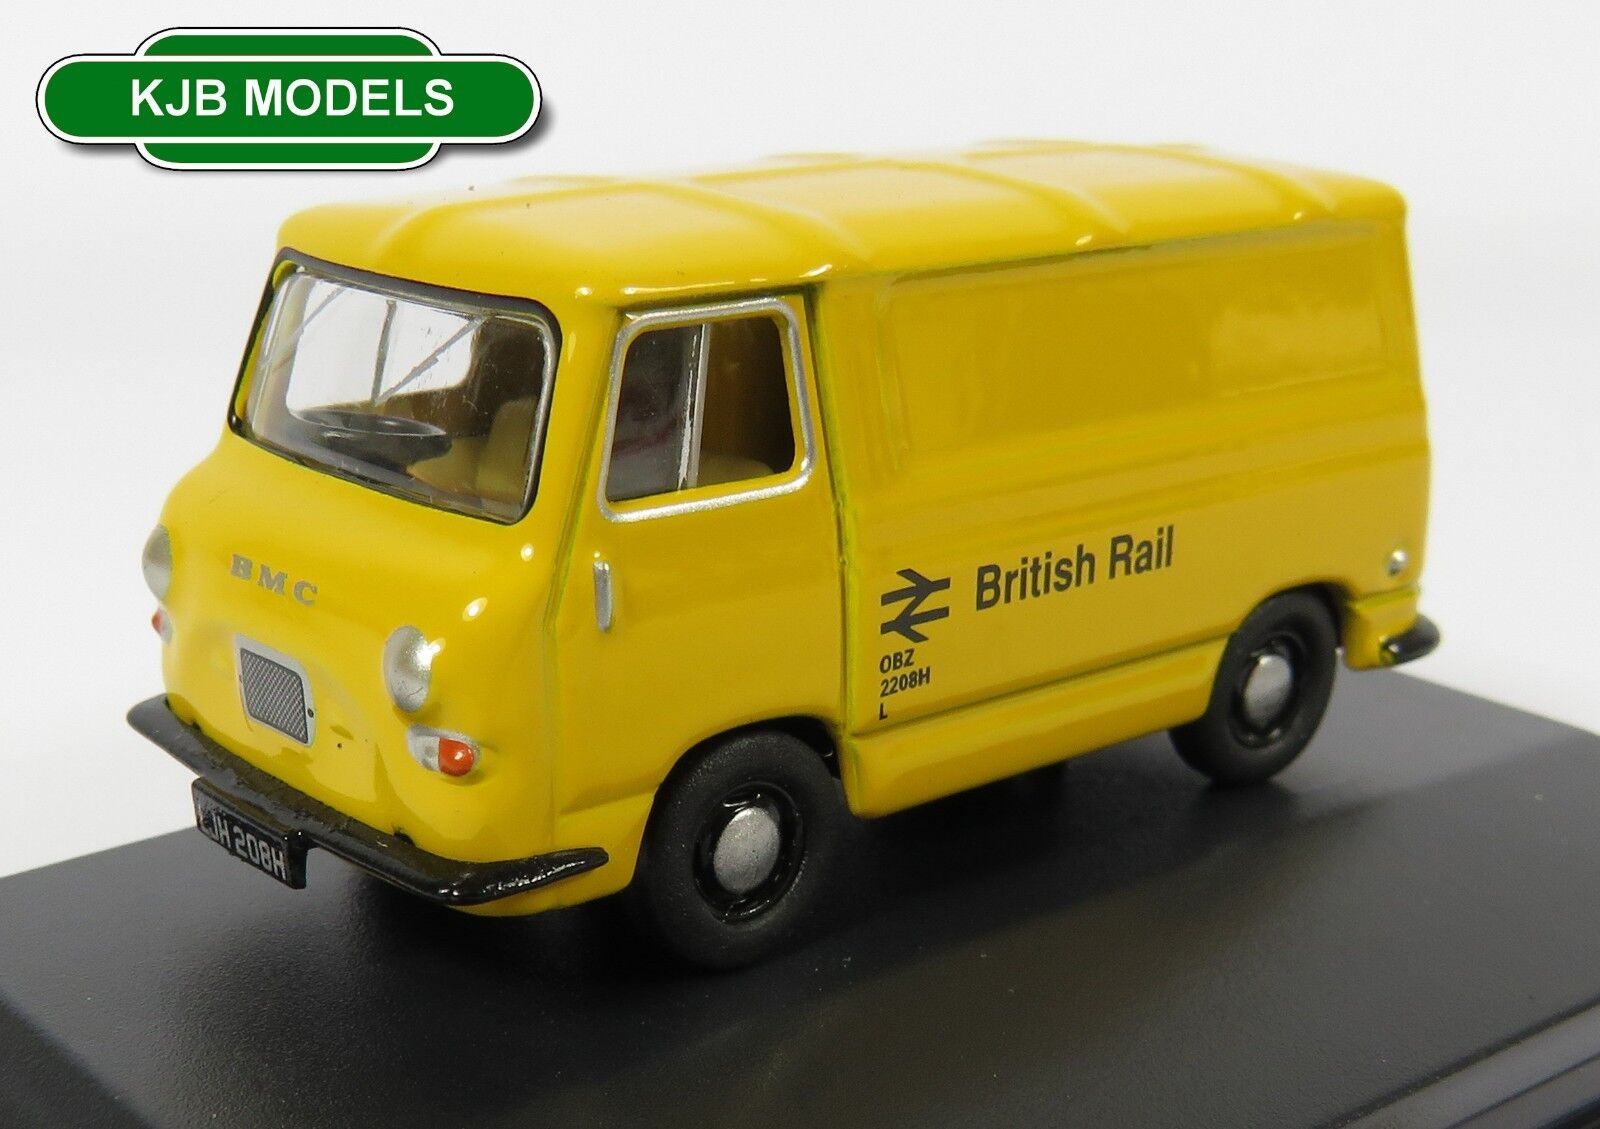 OXFORD DIECAST 76J4002 1:76 OO SCALE BMC J4 Van British Rail